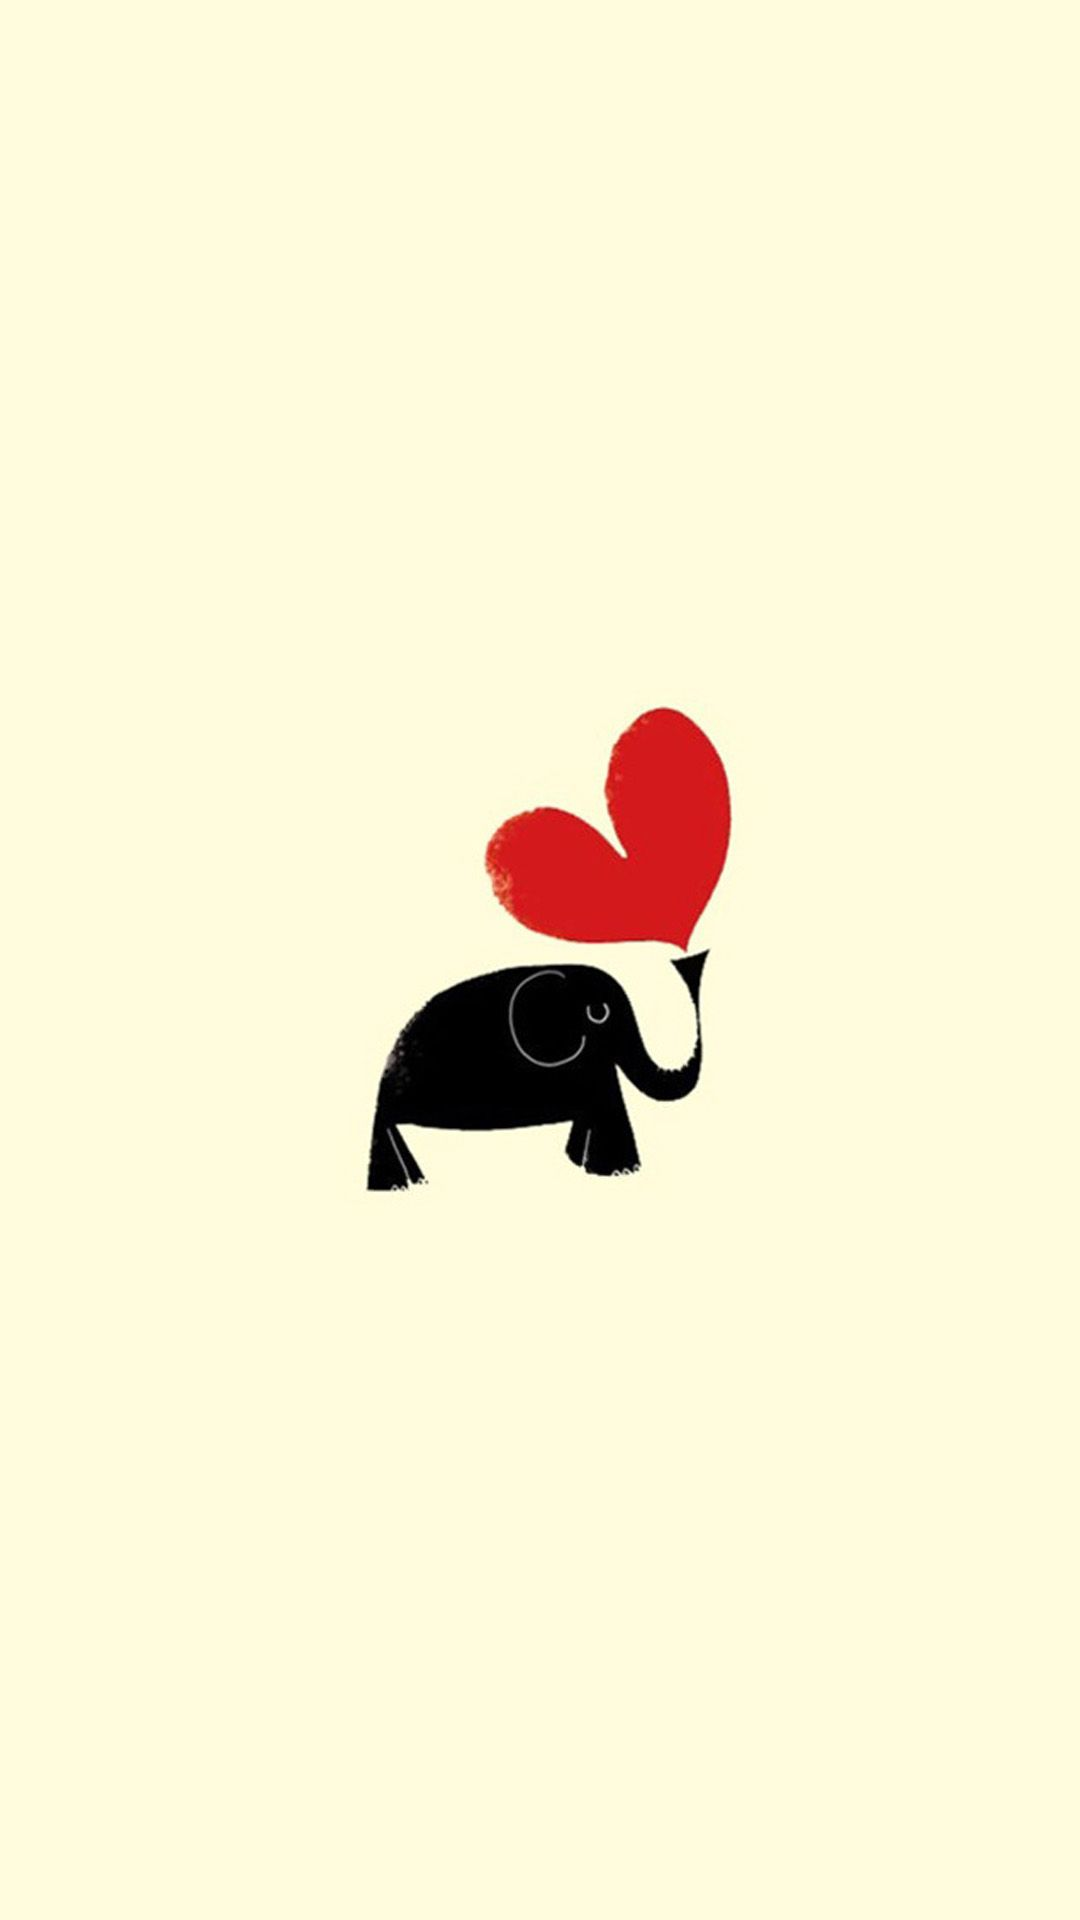 1080x1920 Elephant Iphone Wallpapers